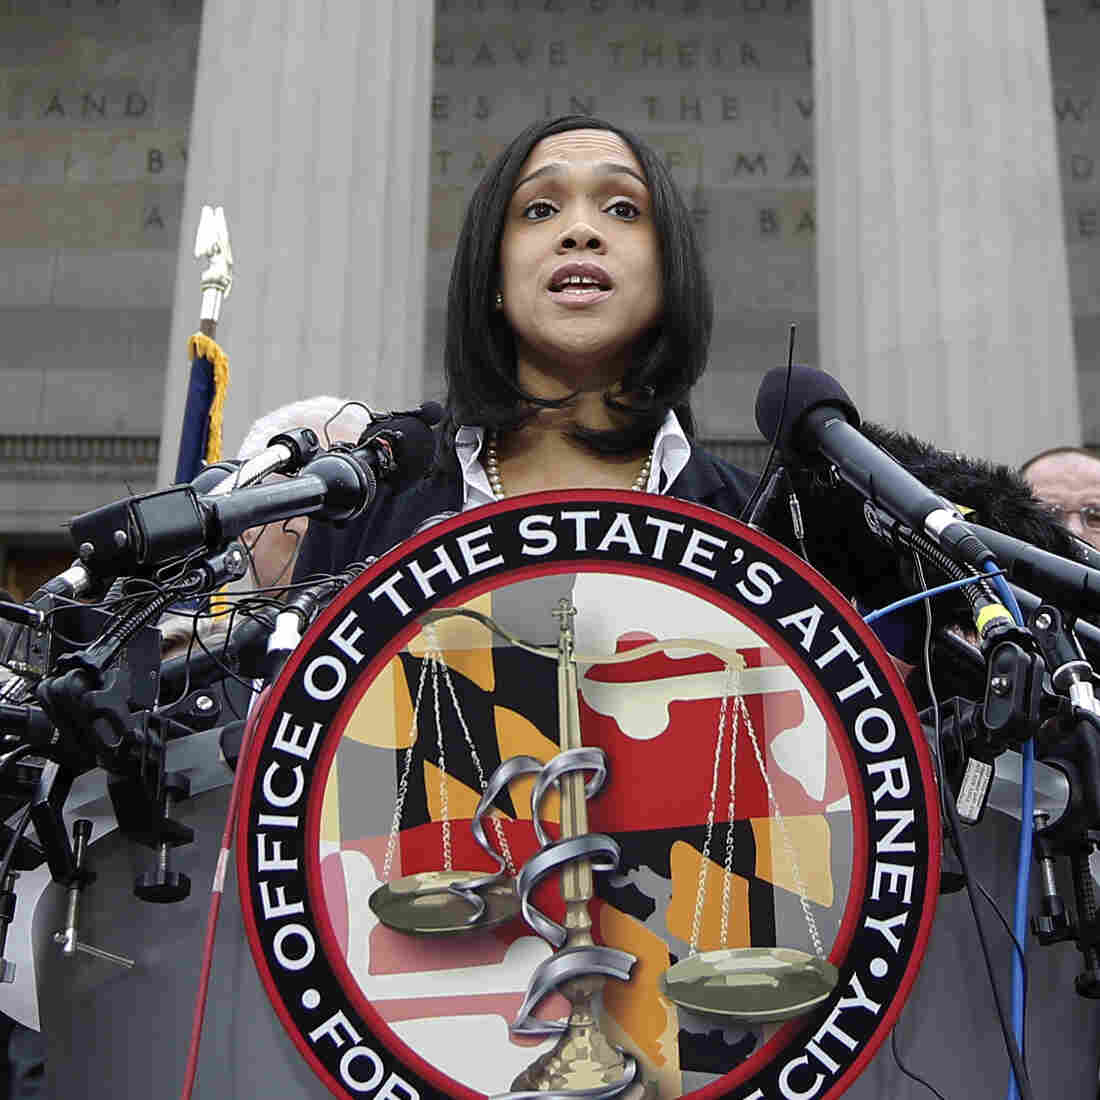 Charges Against 6 Officers In Freddie Gray's Death Range From Murder To Assault